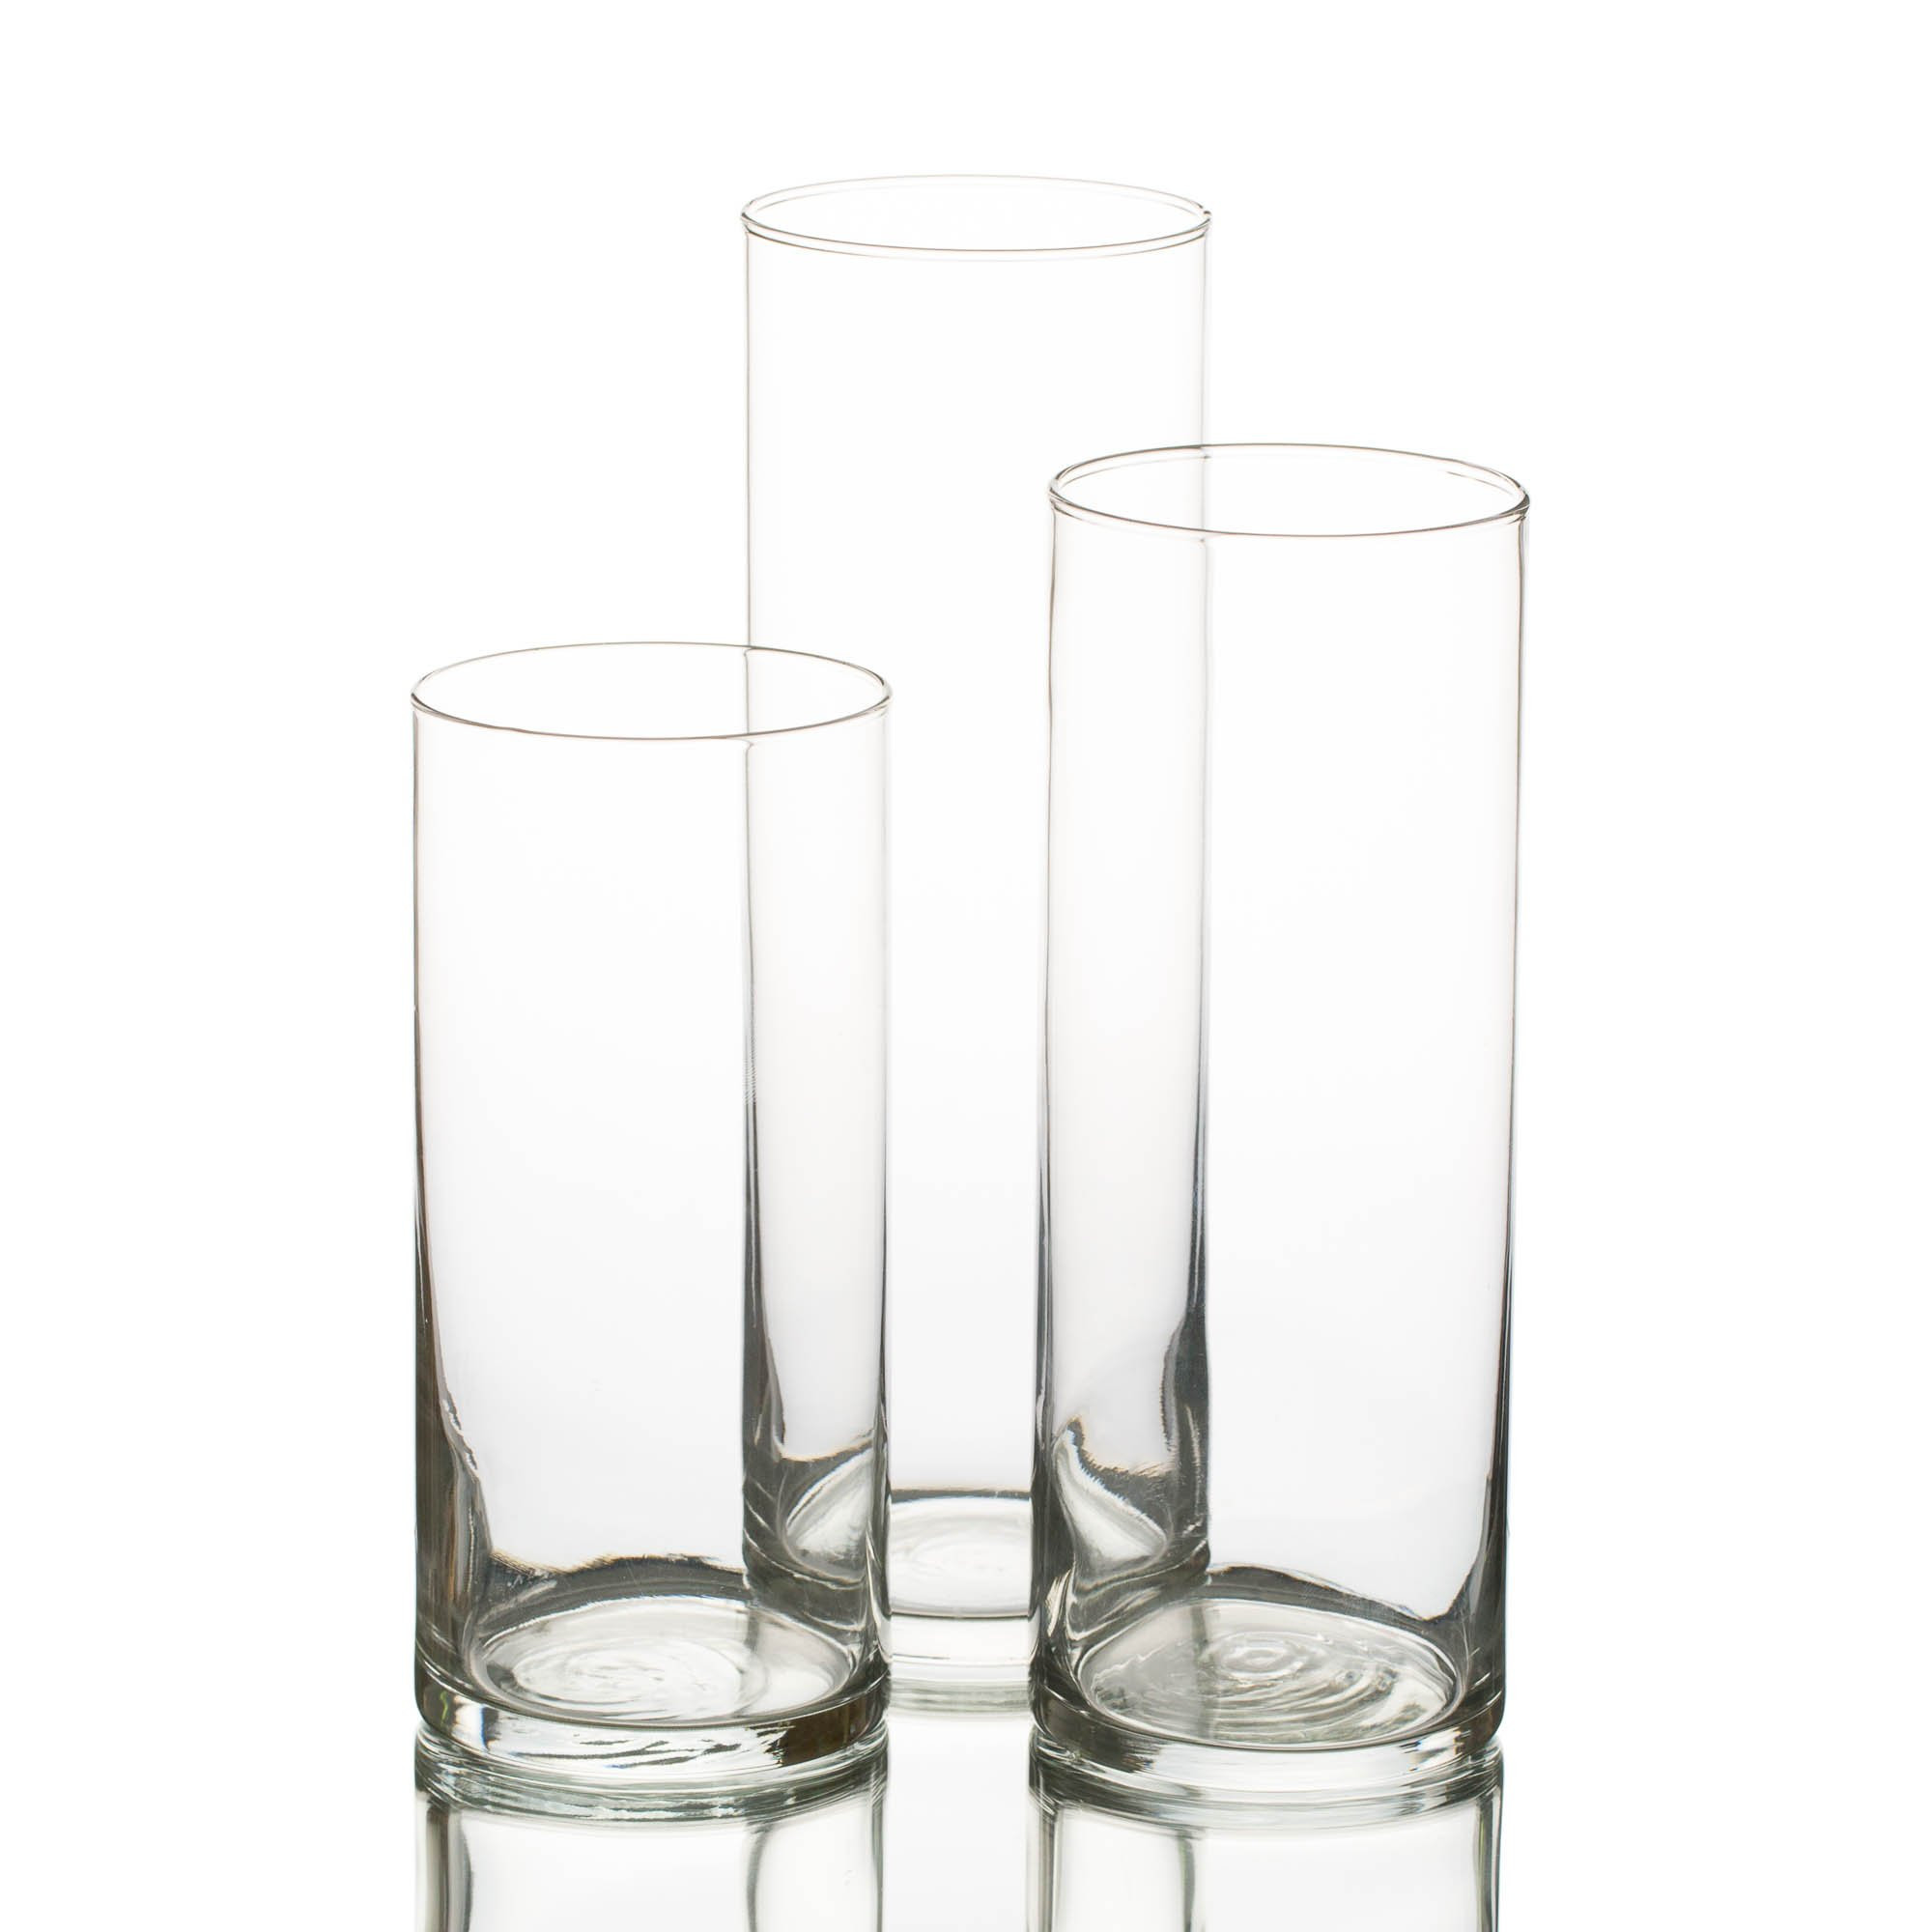 libbey glass cylinder vase 4 5 of amazon com eastland glass cylinder vase set of 3 home kitchen pertaining to 71ws6jd0dtl